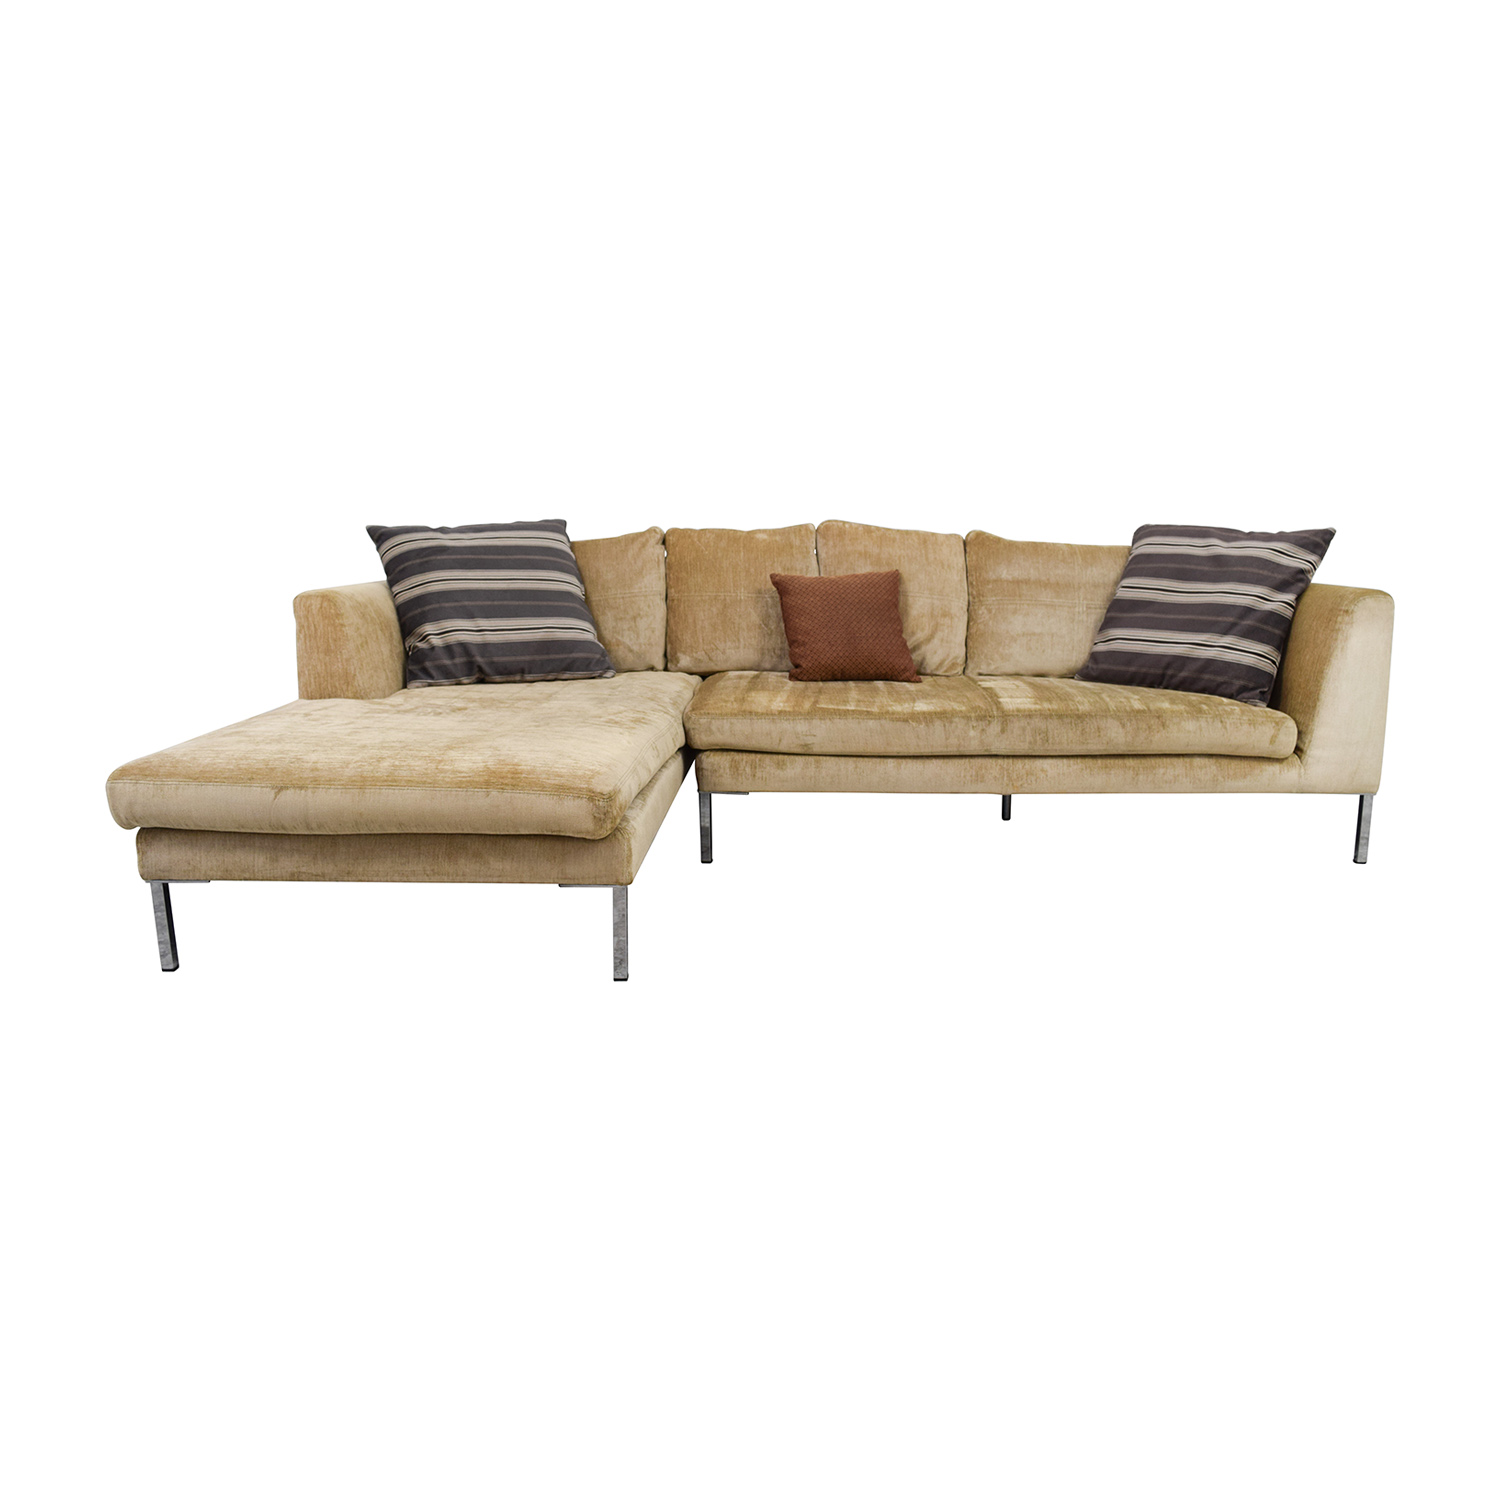 41% OFF Safaviah Safaviah Brown Tuifted Chaise Lounge Sofas